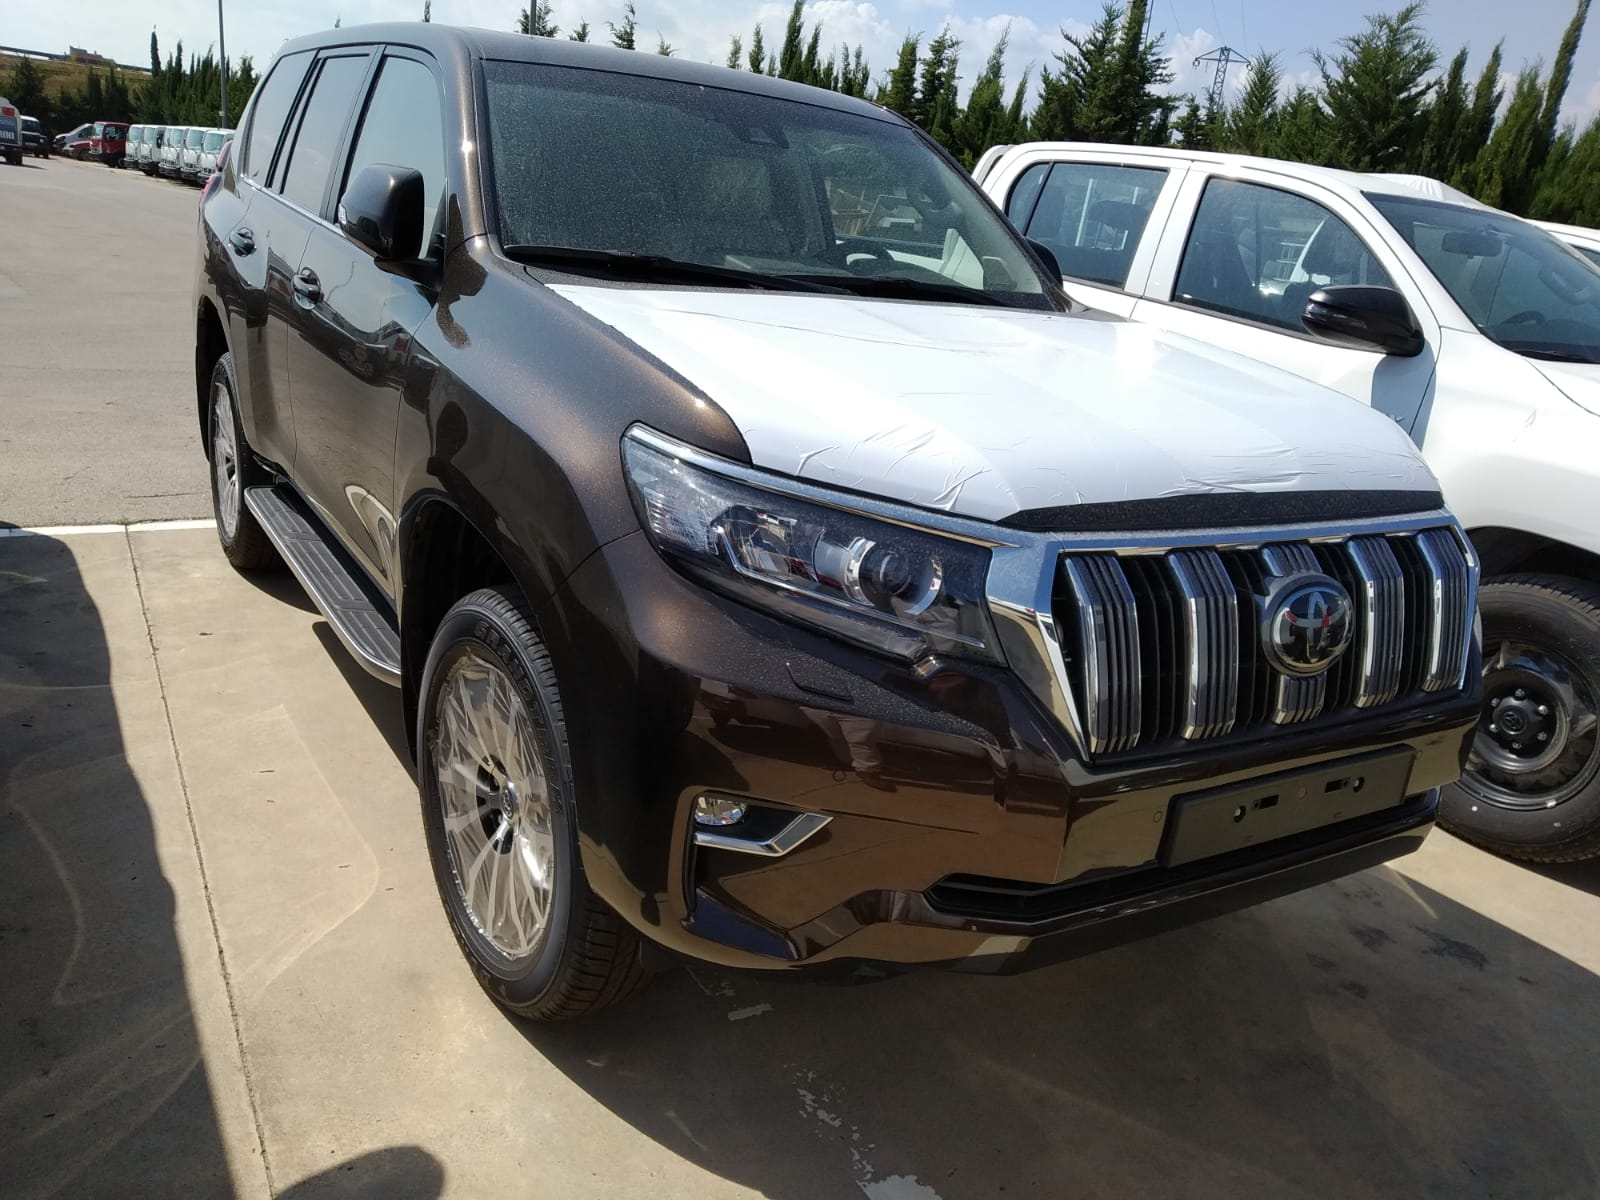 34714 - TOYOTA Land Cruiser 2.8L T/A 6v (4x4) 5P VXL [2019] VXL LEATHER [A1] Europe